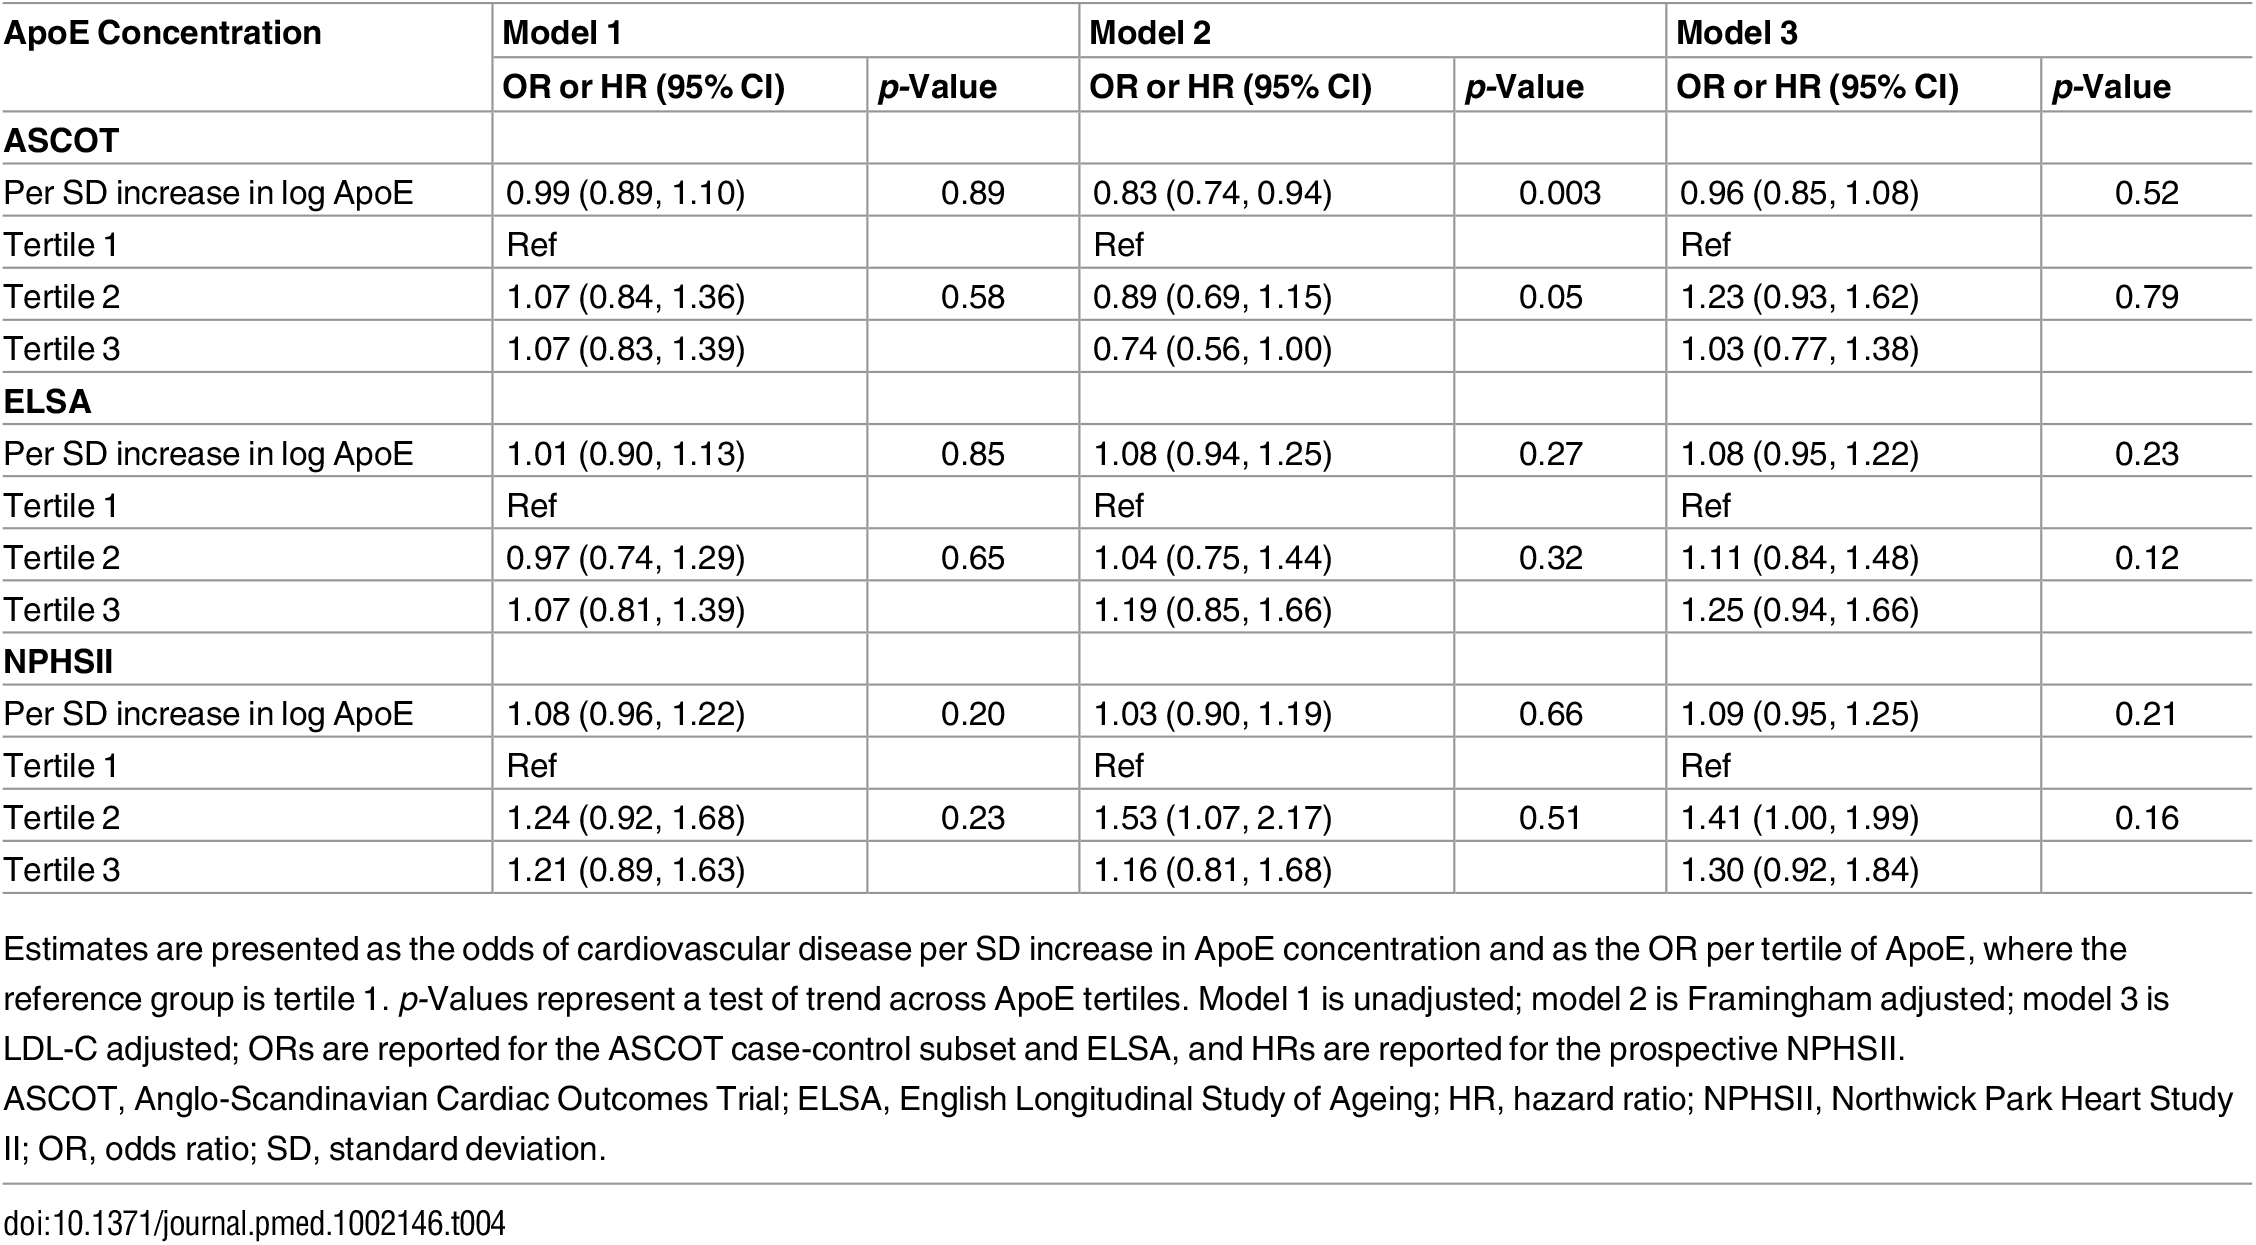 Summary estimates for the association of log ApoE concentration with cardiovascular events from the three studies.